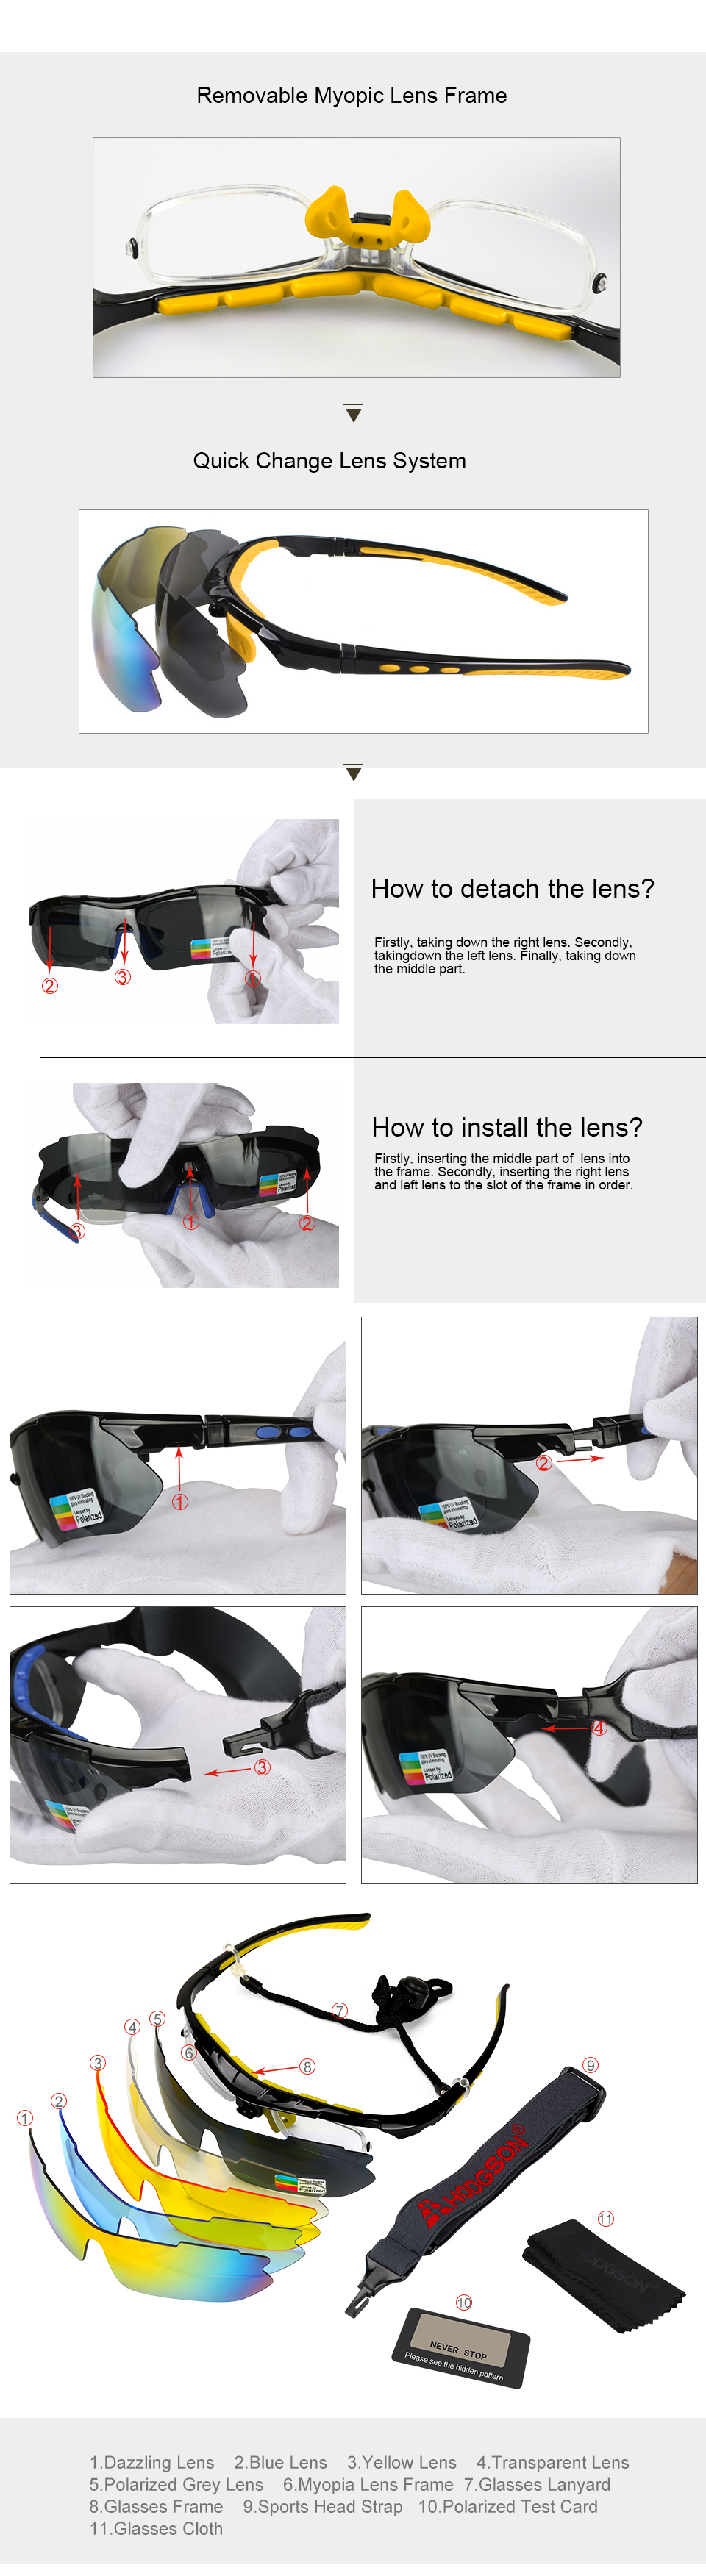 e0a927d1e8b 1013 01 1013 02 1013 03 1013 04. Package Included  1 Glasses Frame with a Polarized  Lens